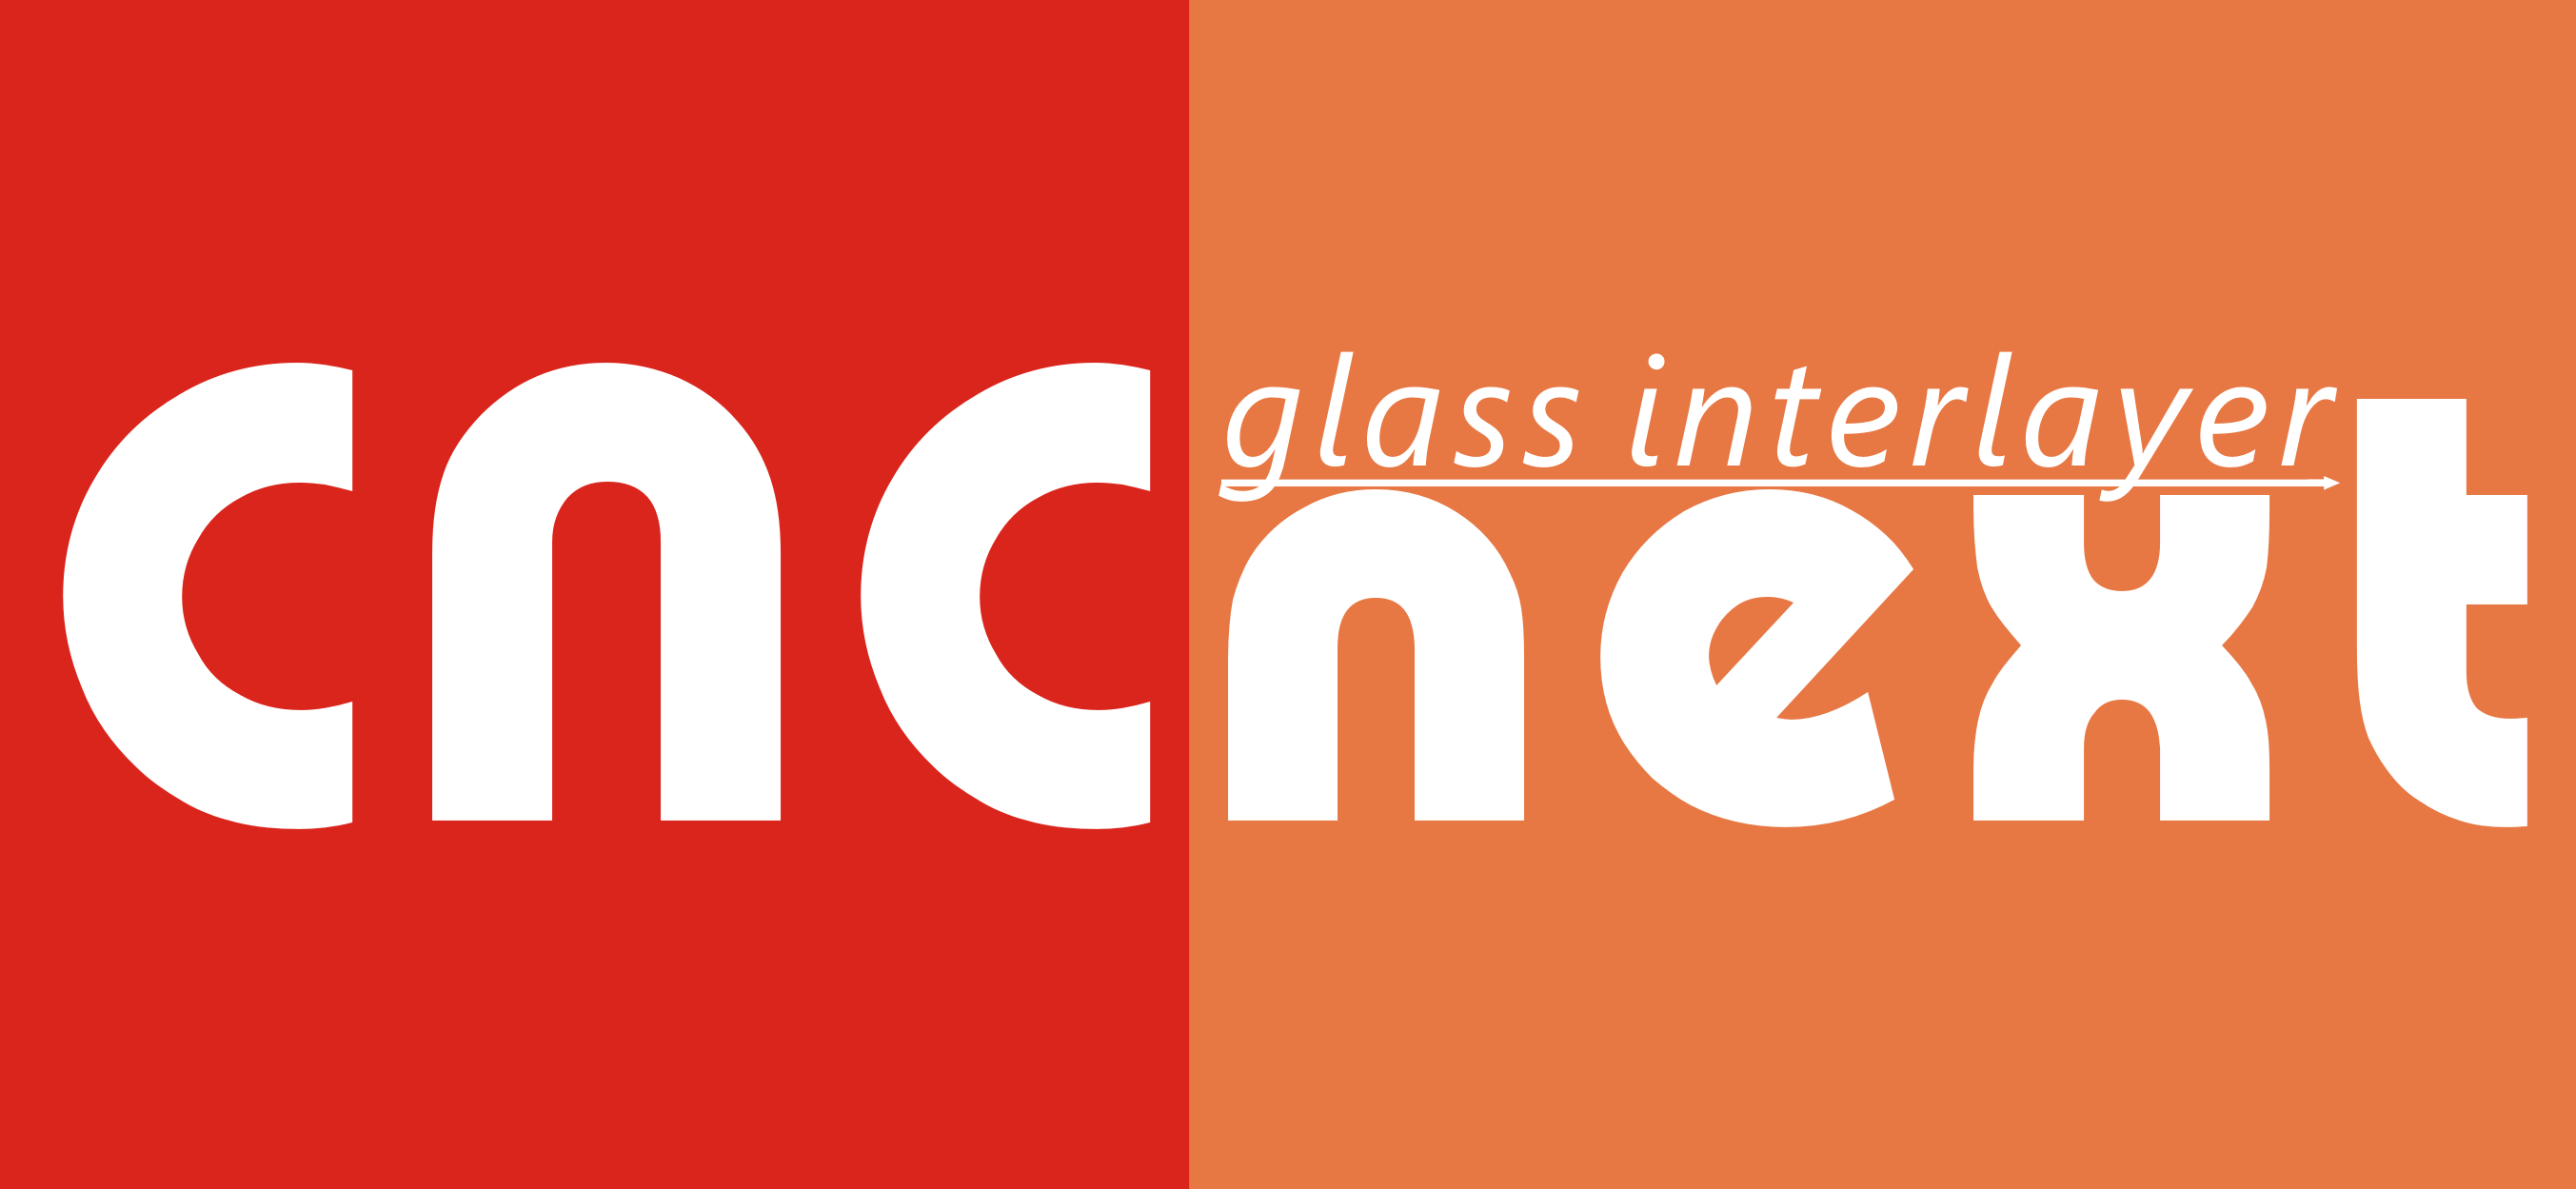 CNCnext GLASS INTERLAYER